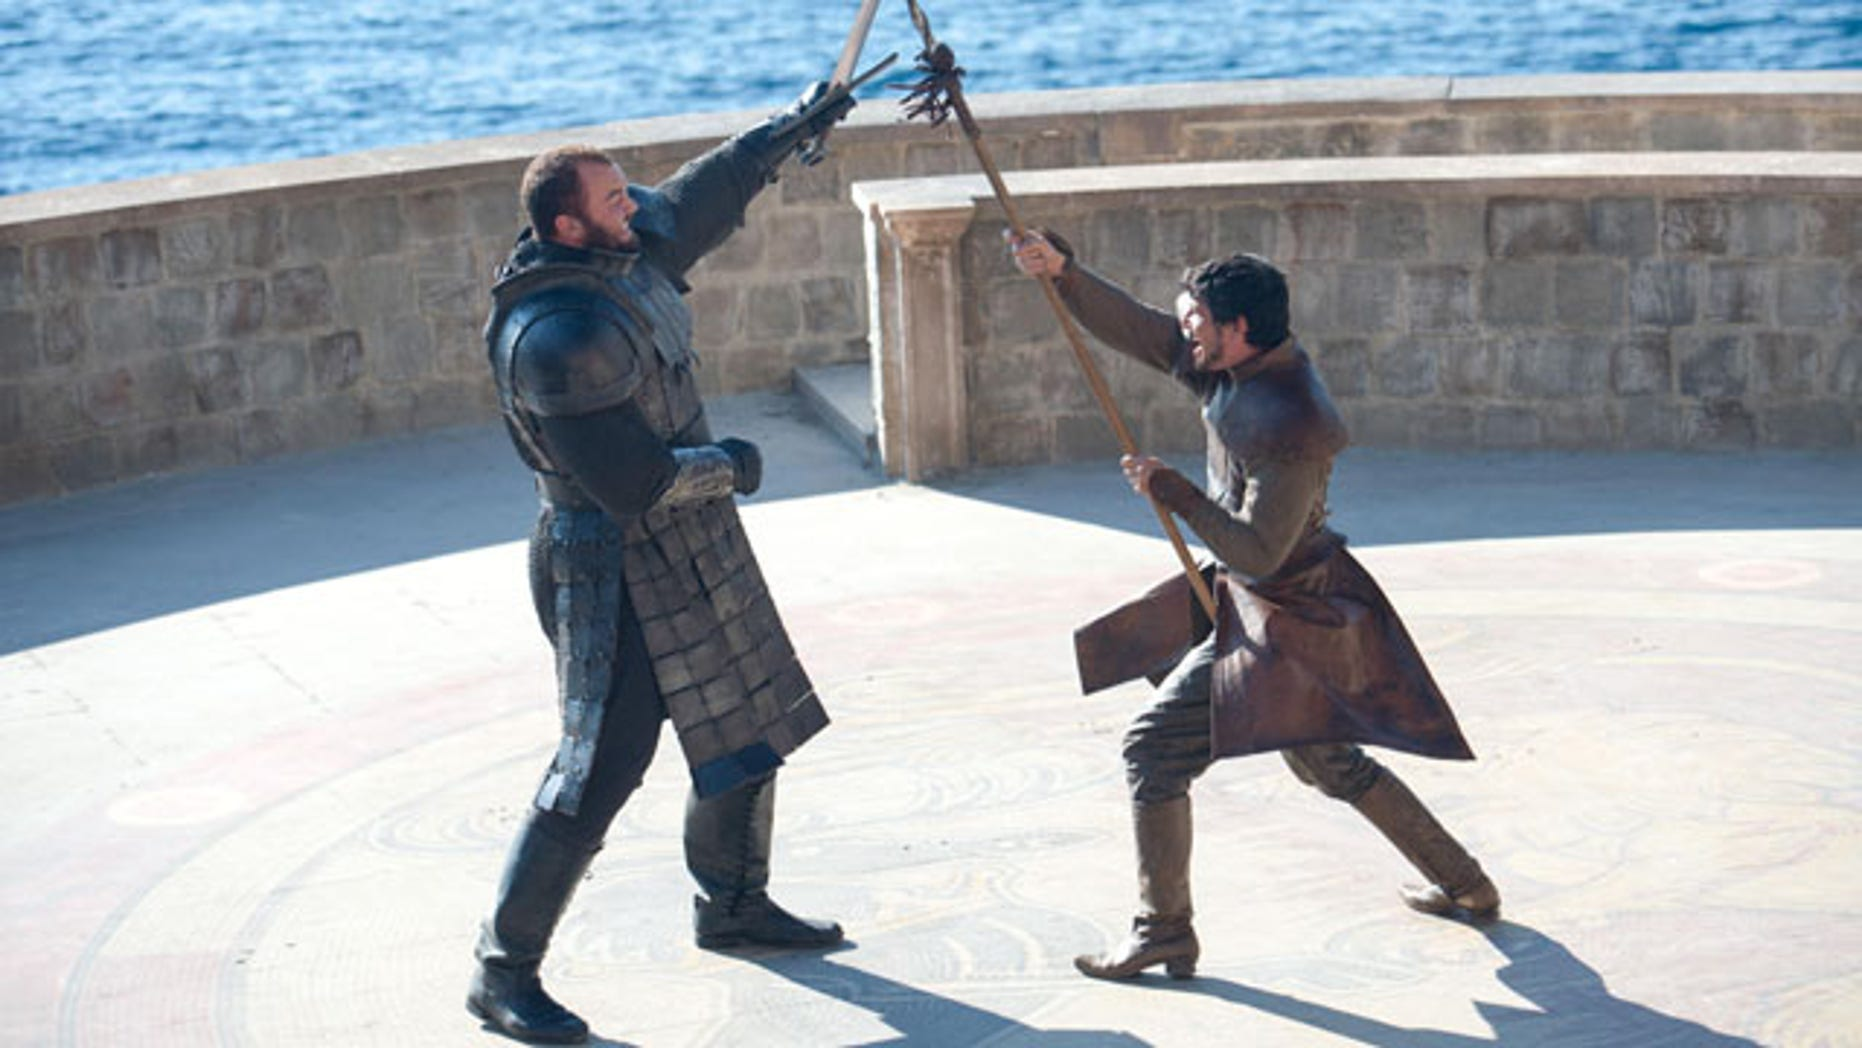 Duel to the Death: The Mountain (Hafthor Julius Bjornsson) squares off against Oberyn Martell (Pedro Pascal) (Courtesy HBO)